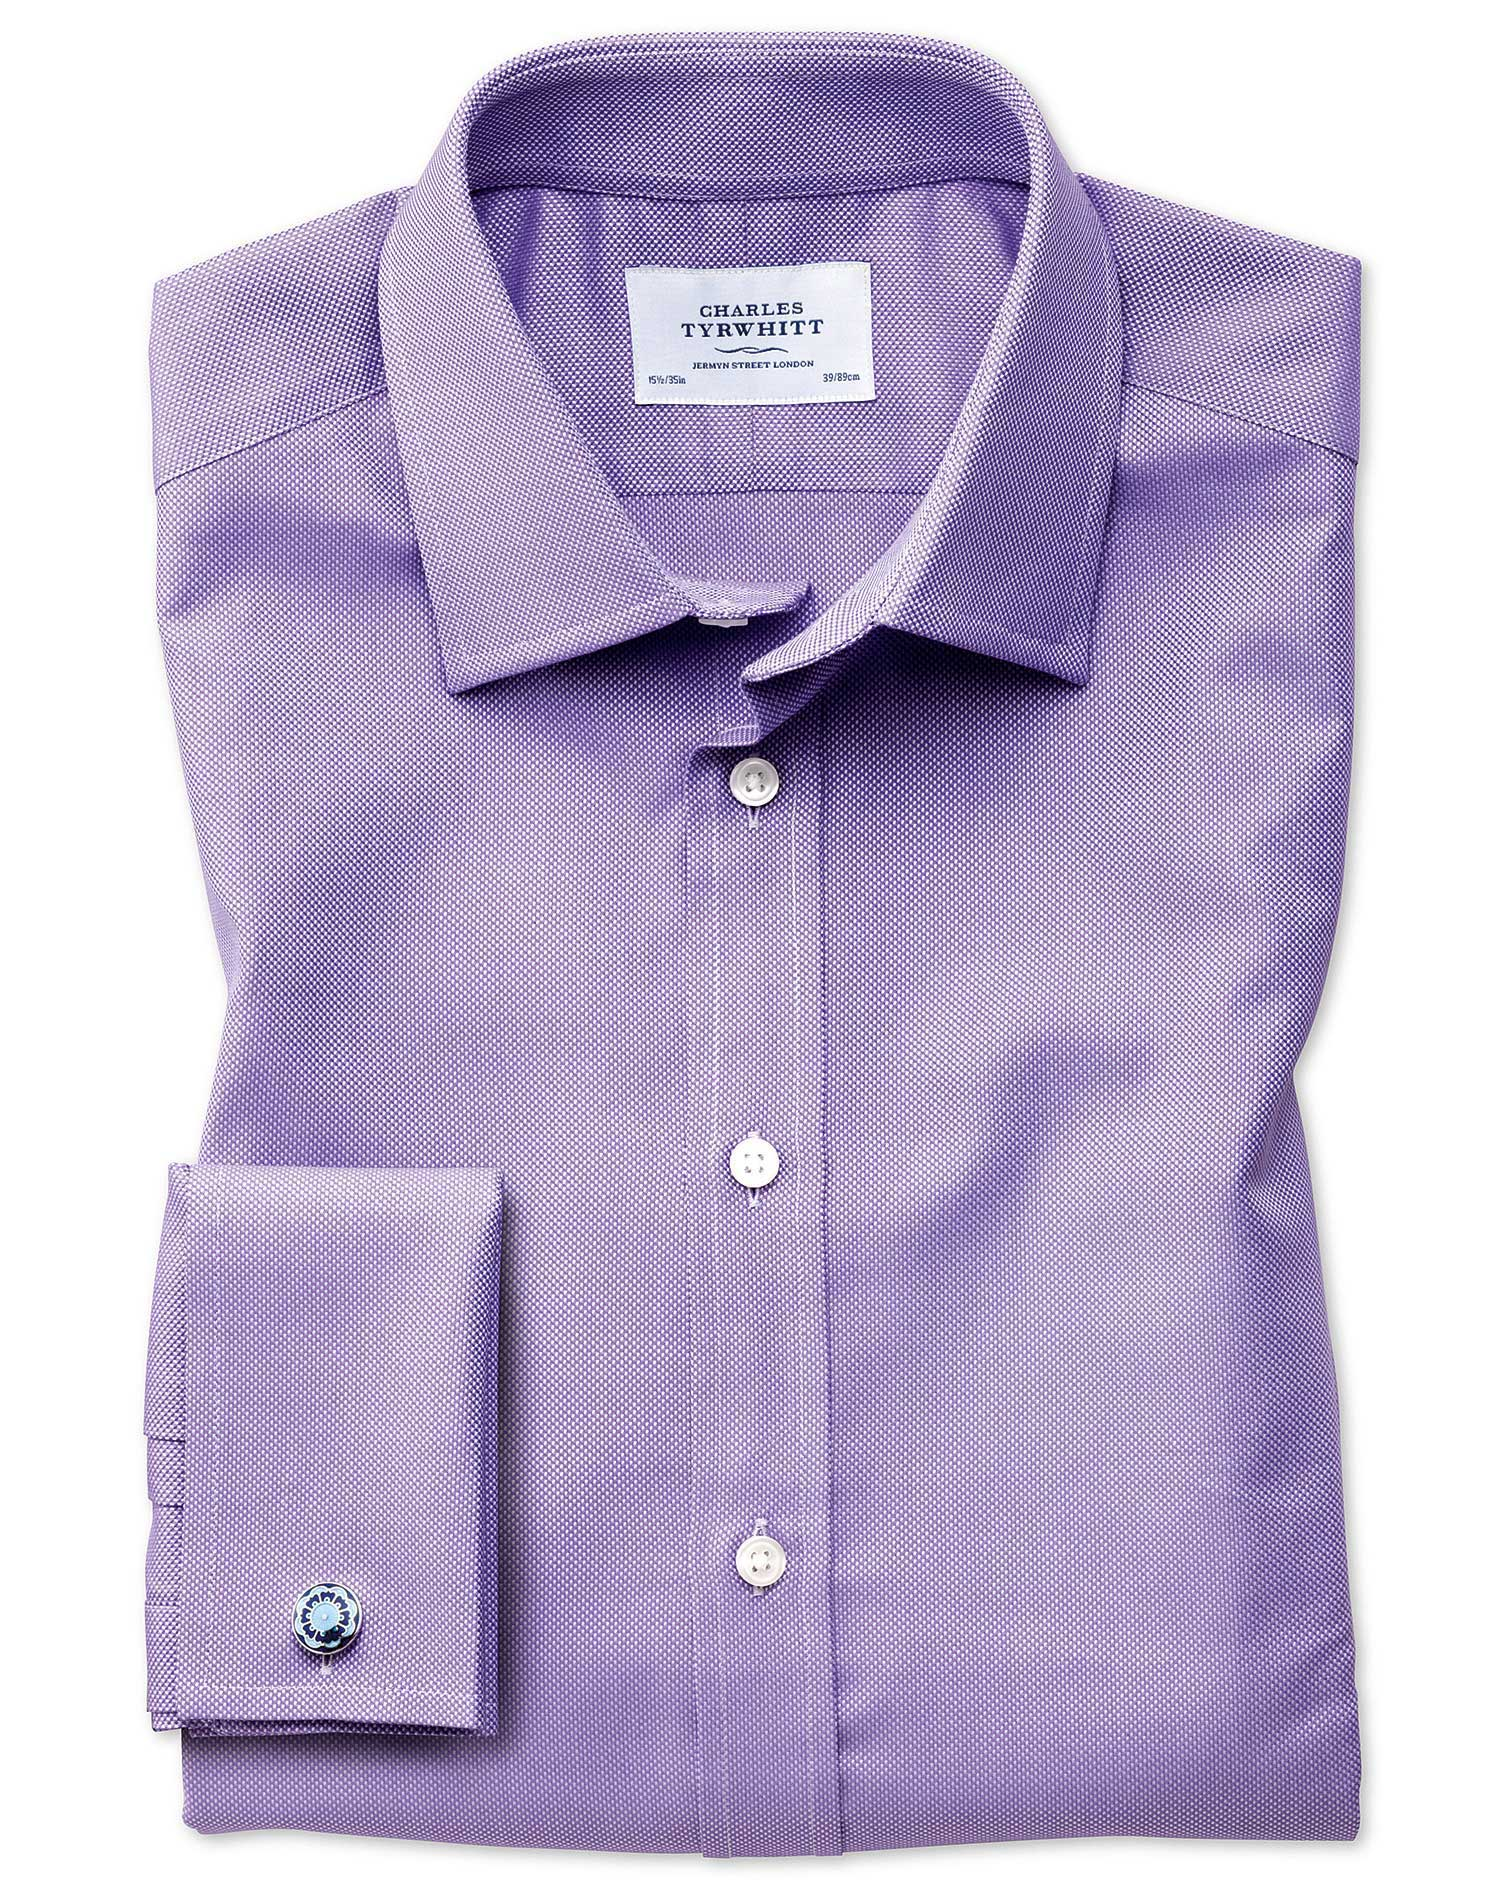 Classic Fit Egyptian Cotton Royal Oxford Lilac Formal Shirt Double Cuff Size 16.5/33 by Charles Tyrw